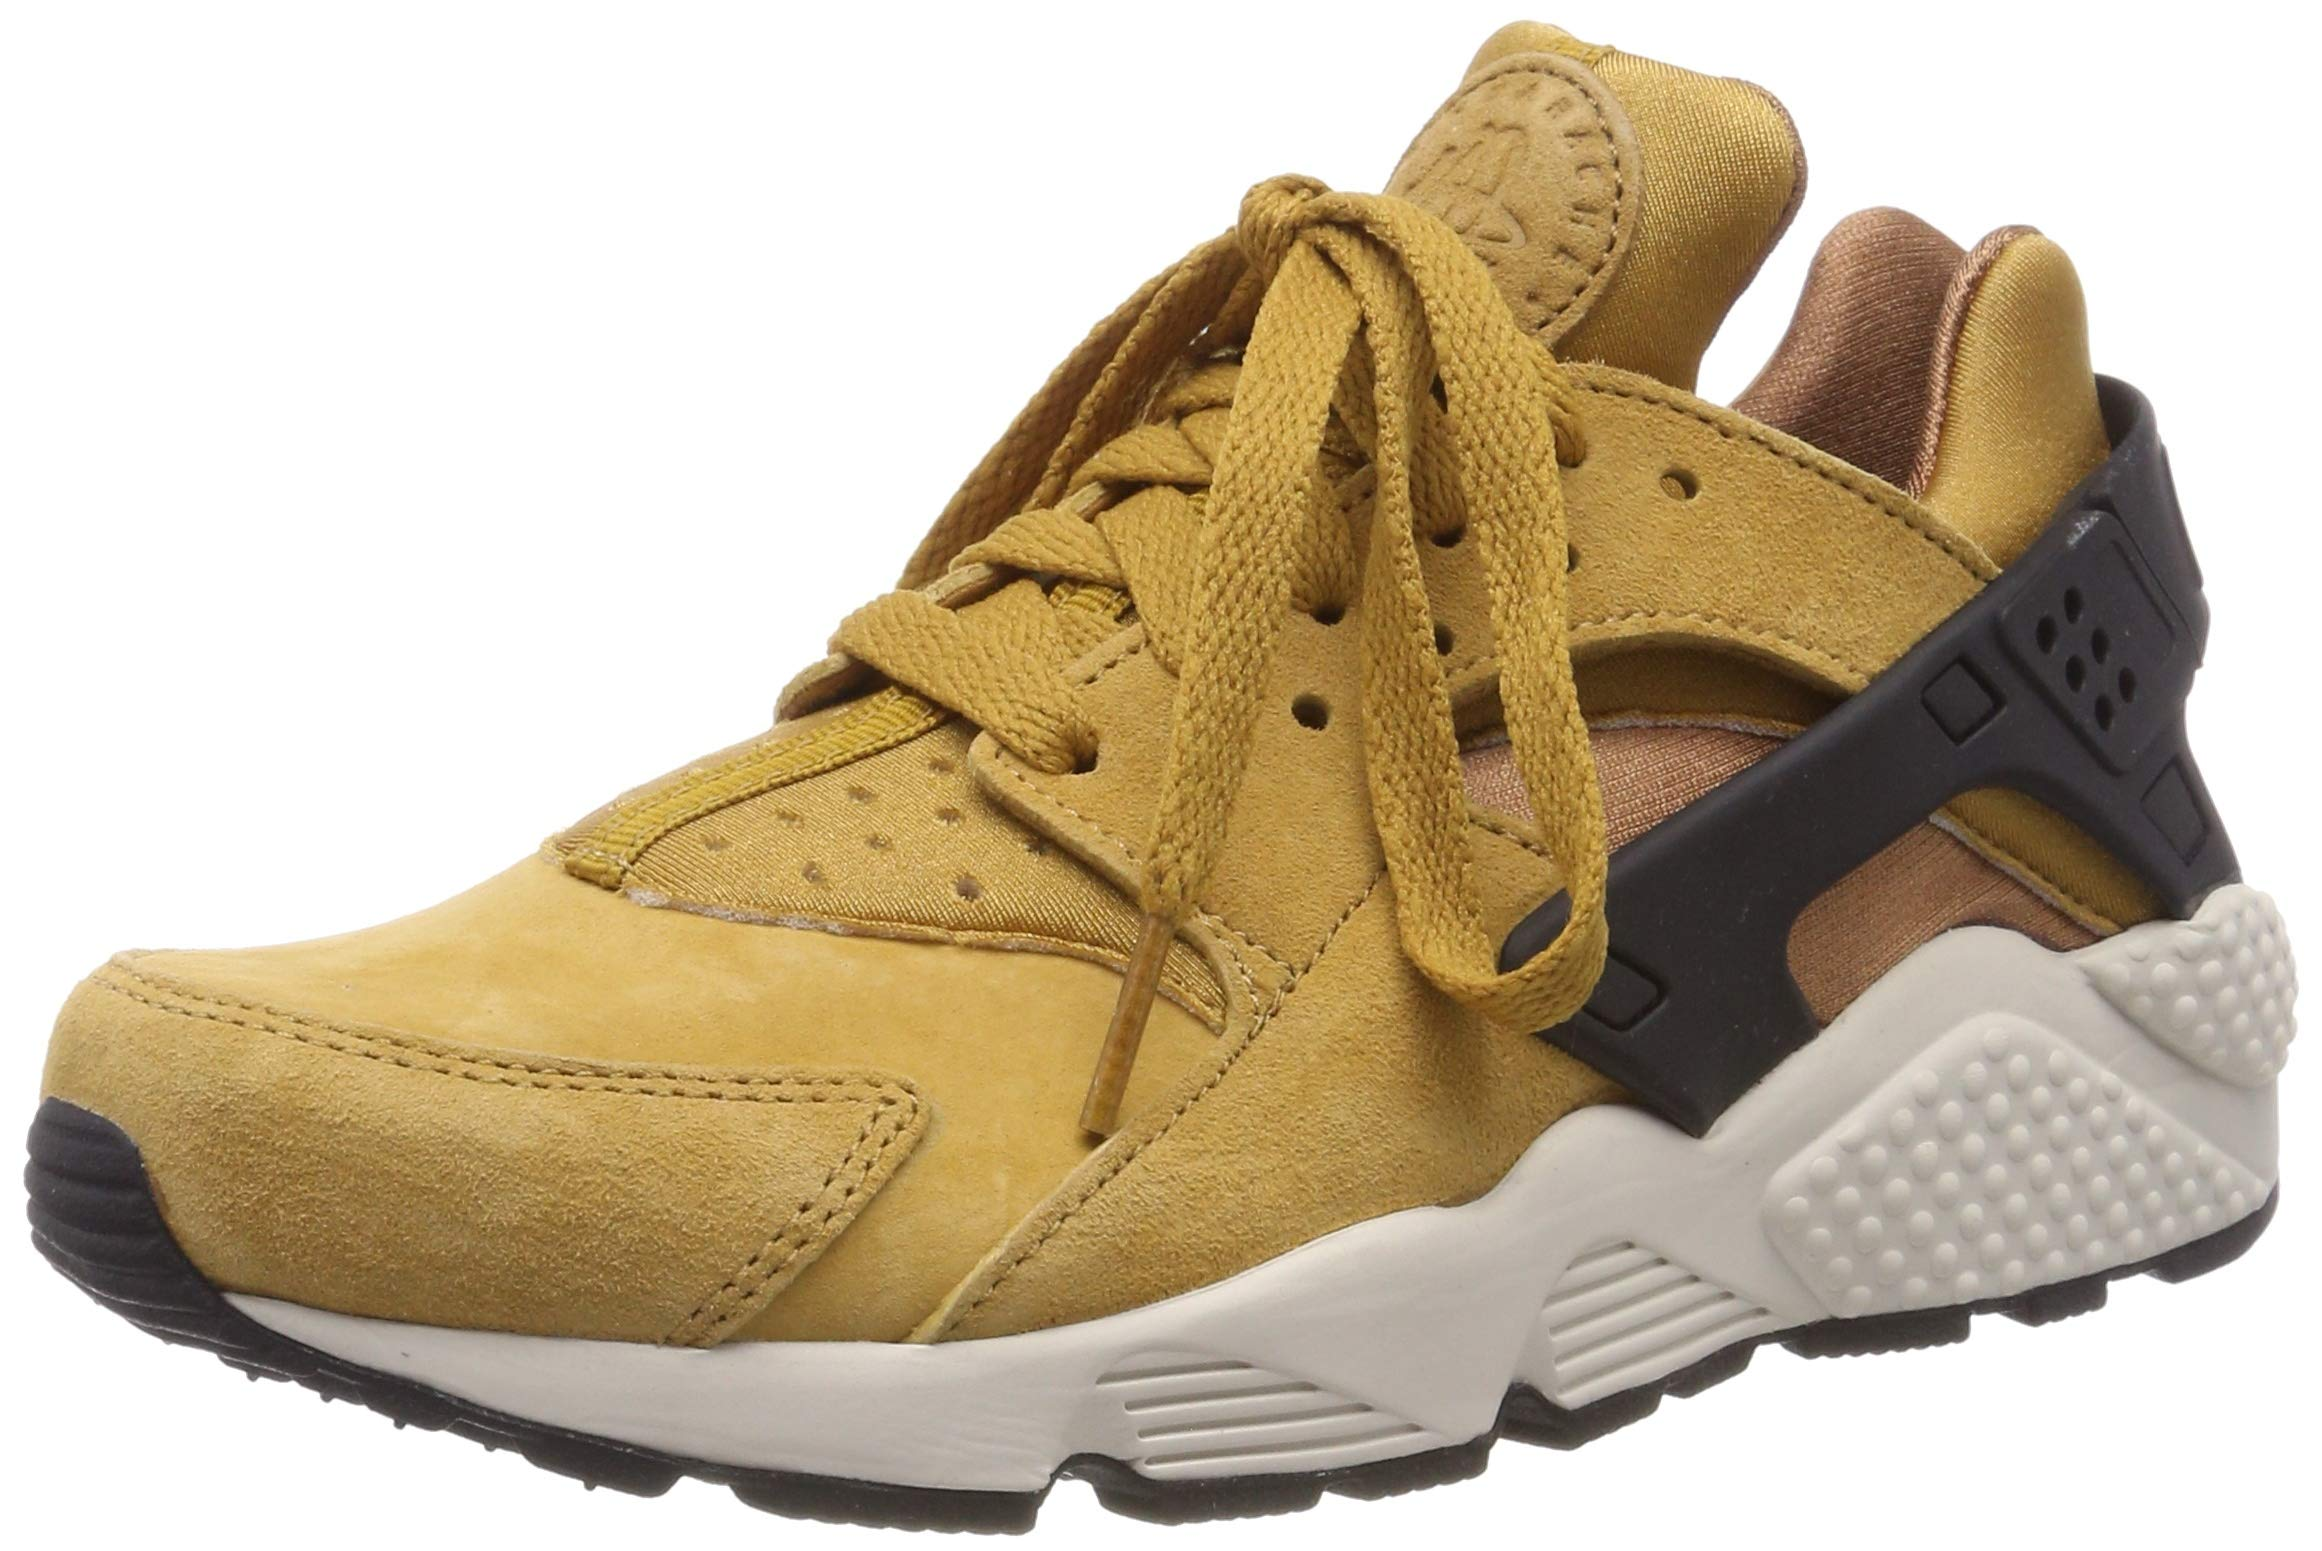 finest selection 40569 c9bd2 Galleon - Nike Air Huarache Run PRM Mens Style  704830-700 Size  11.5